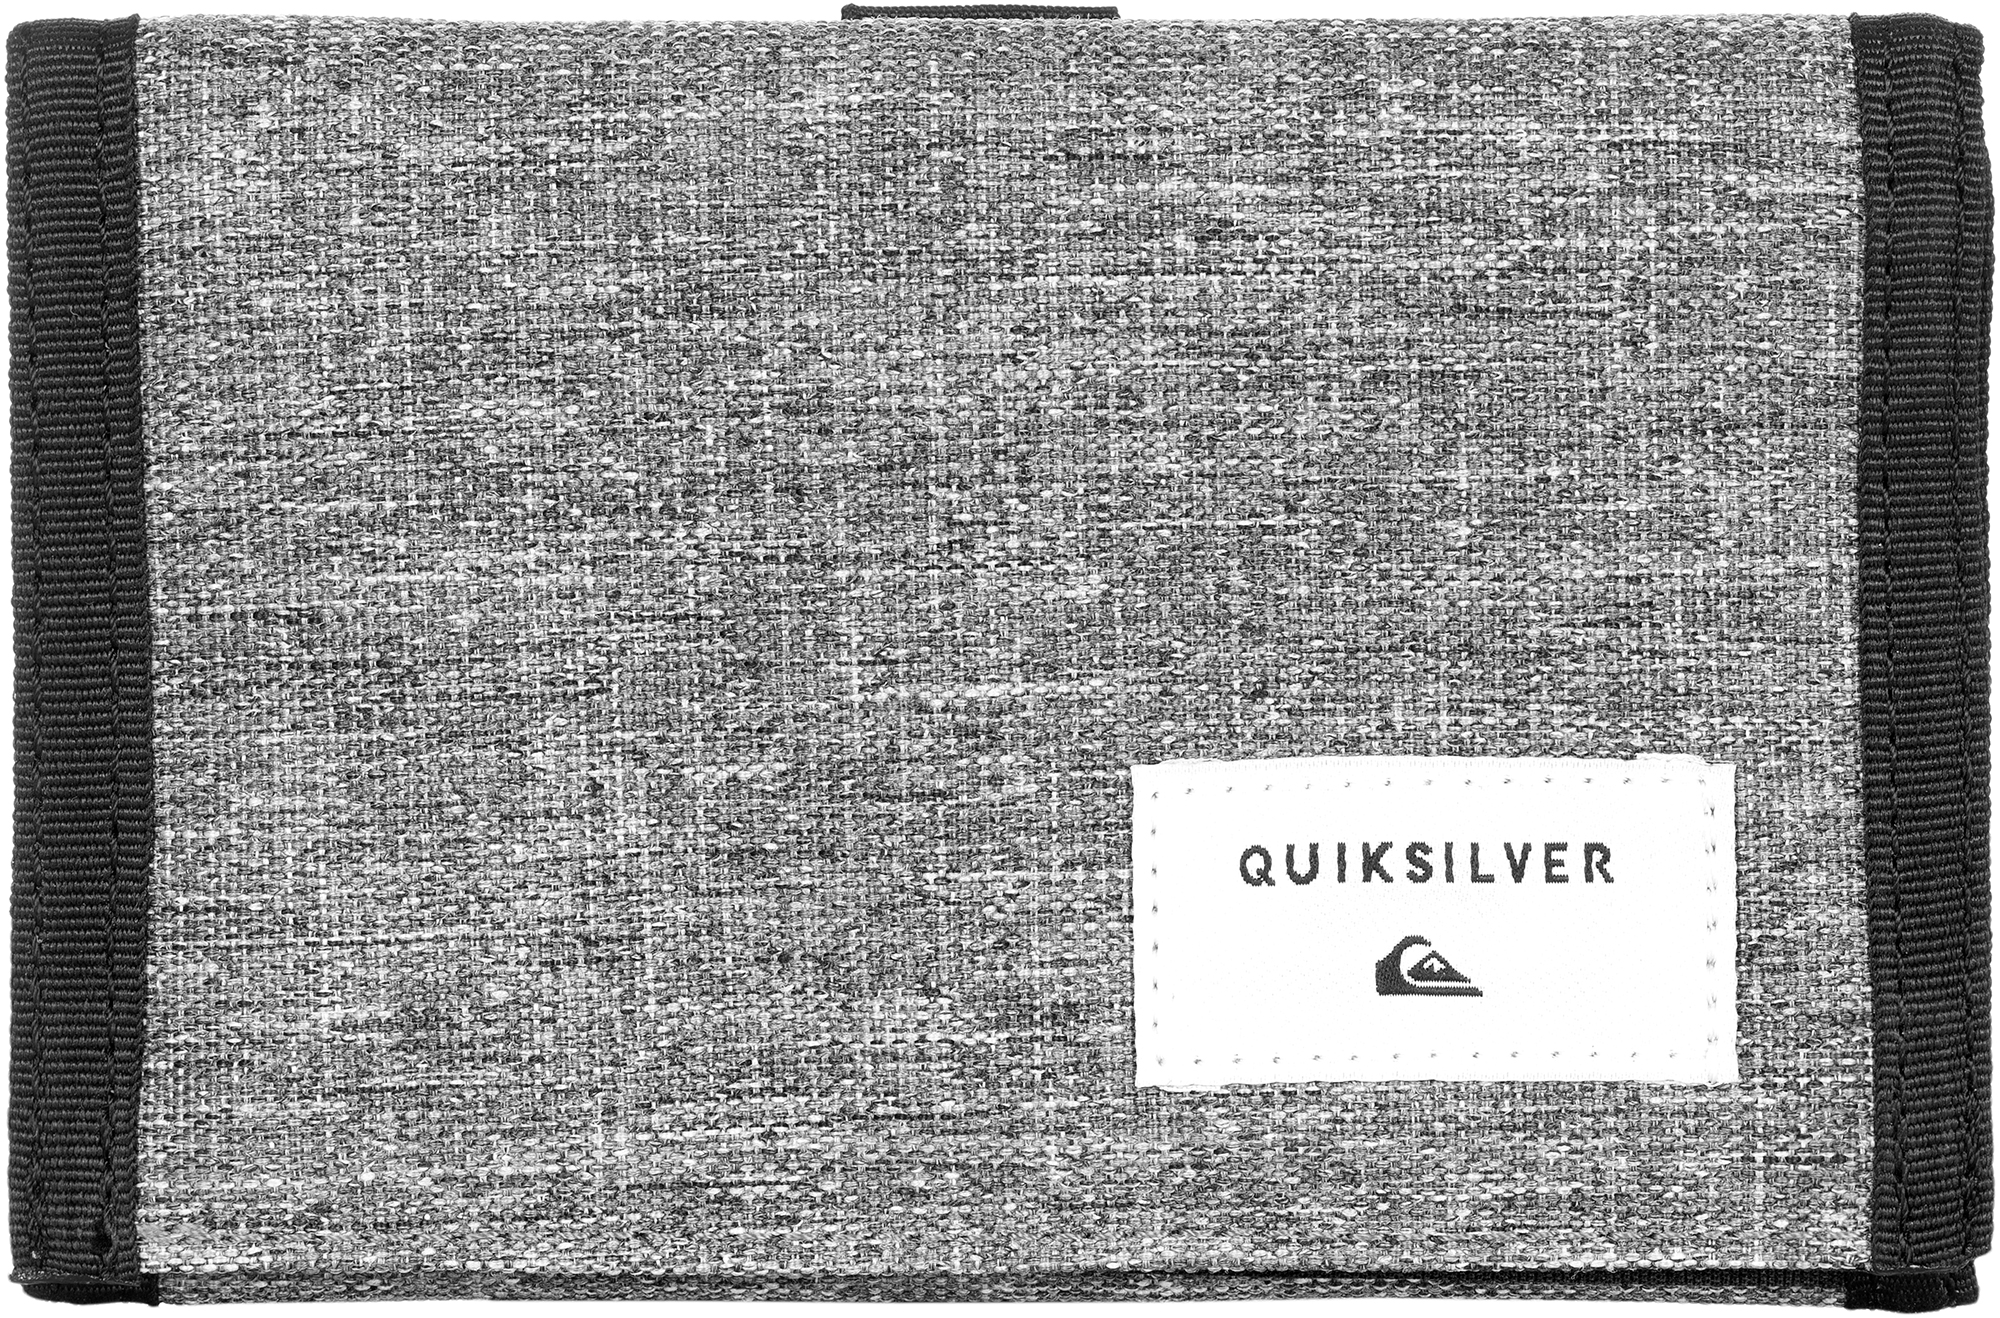 Quiksilver Кошелек Quiksilver Delect 650nm 5mw focusable red line laser module laser generator diode